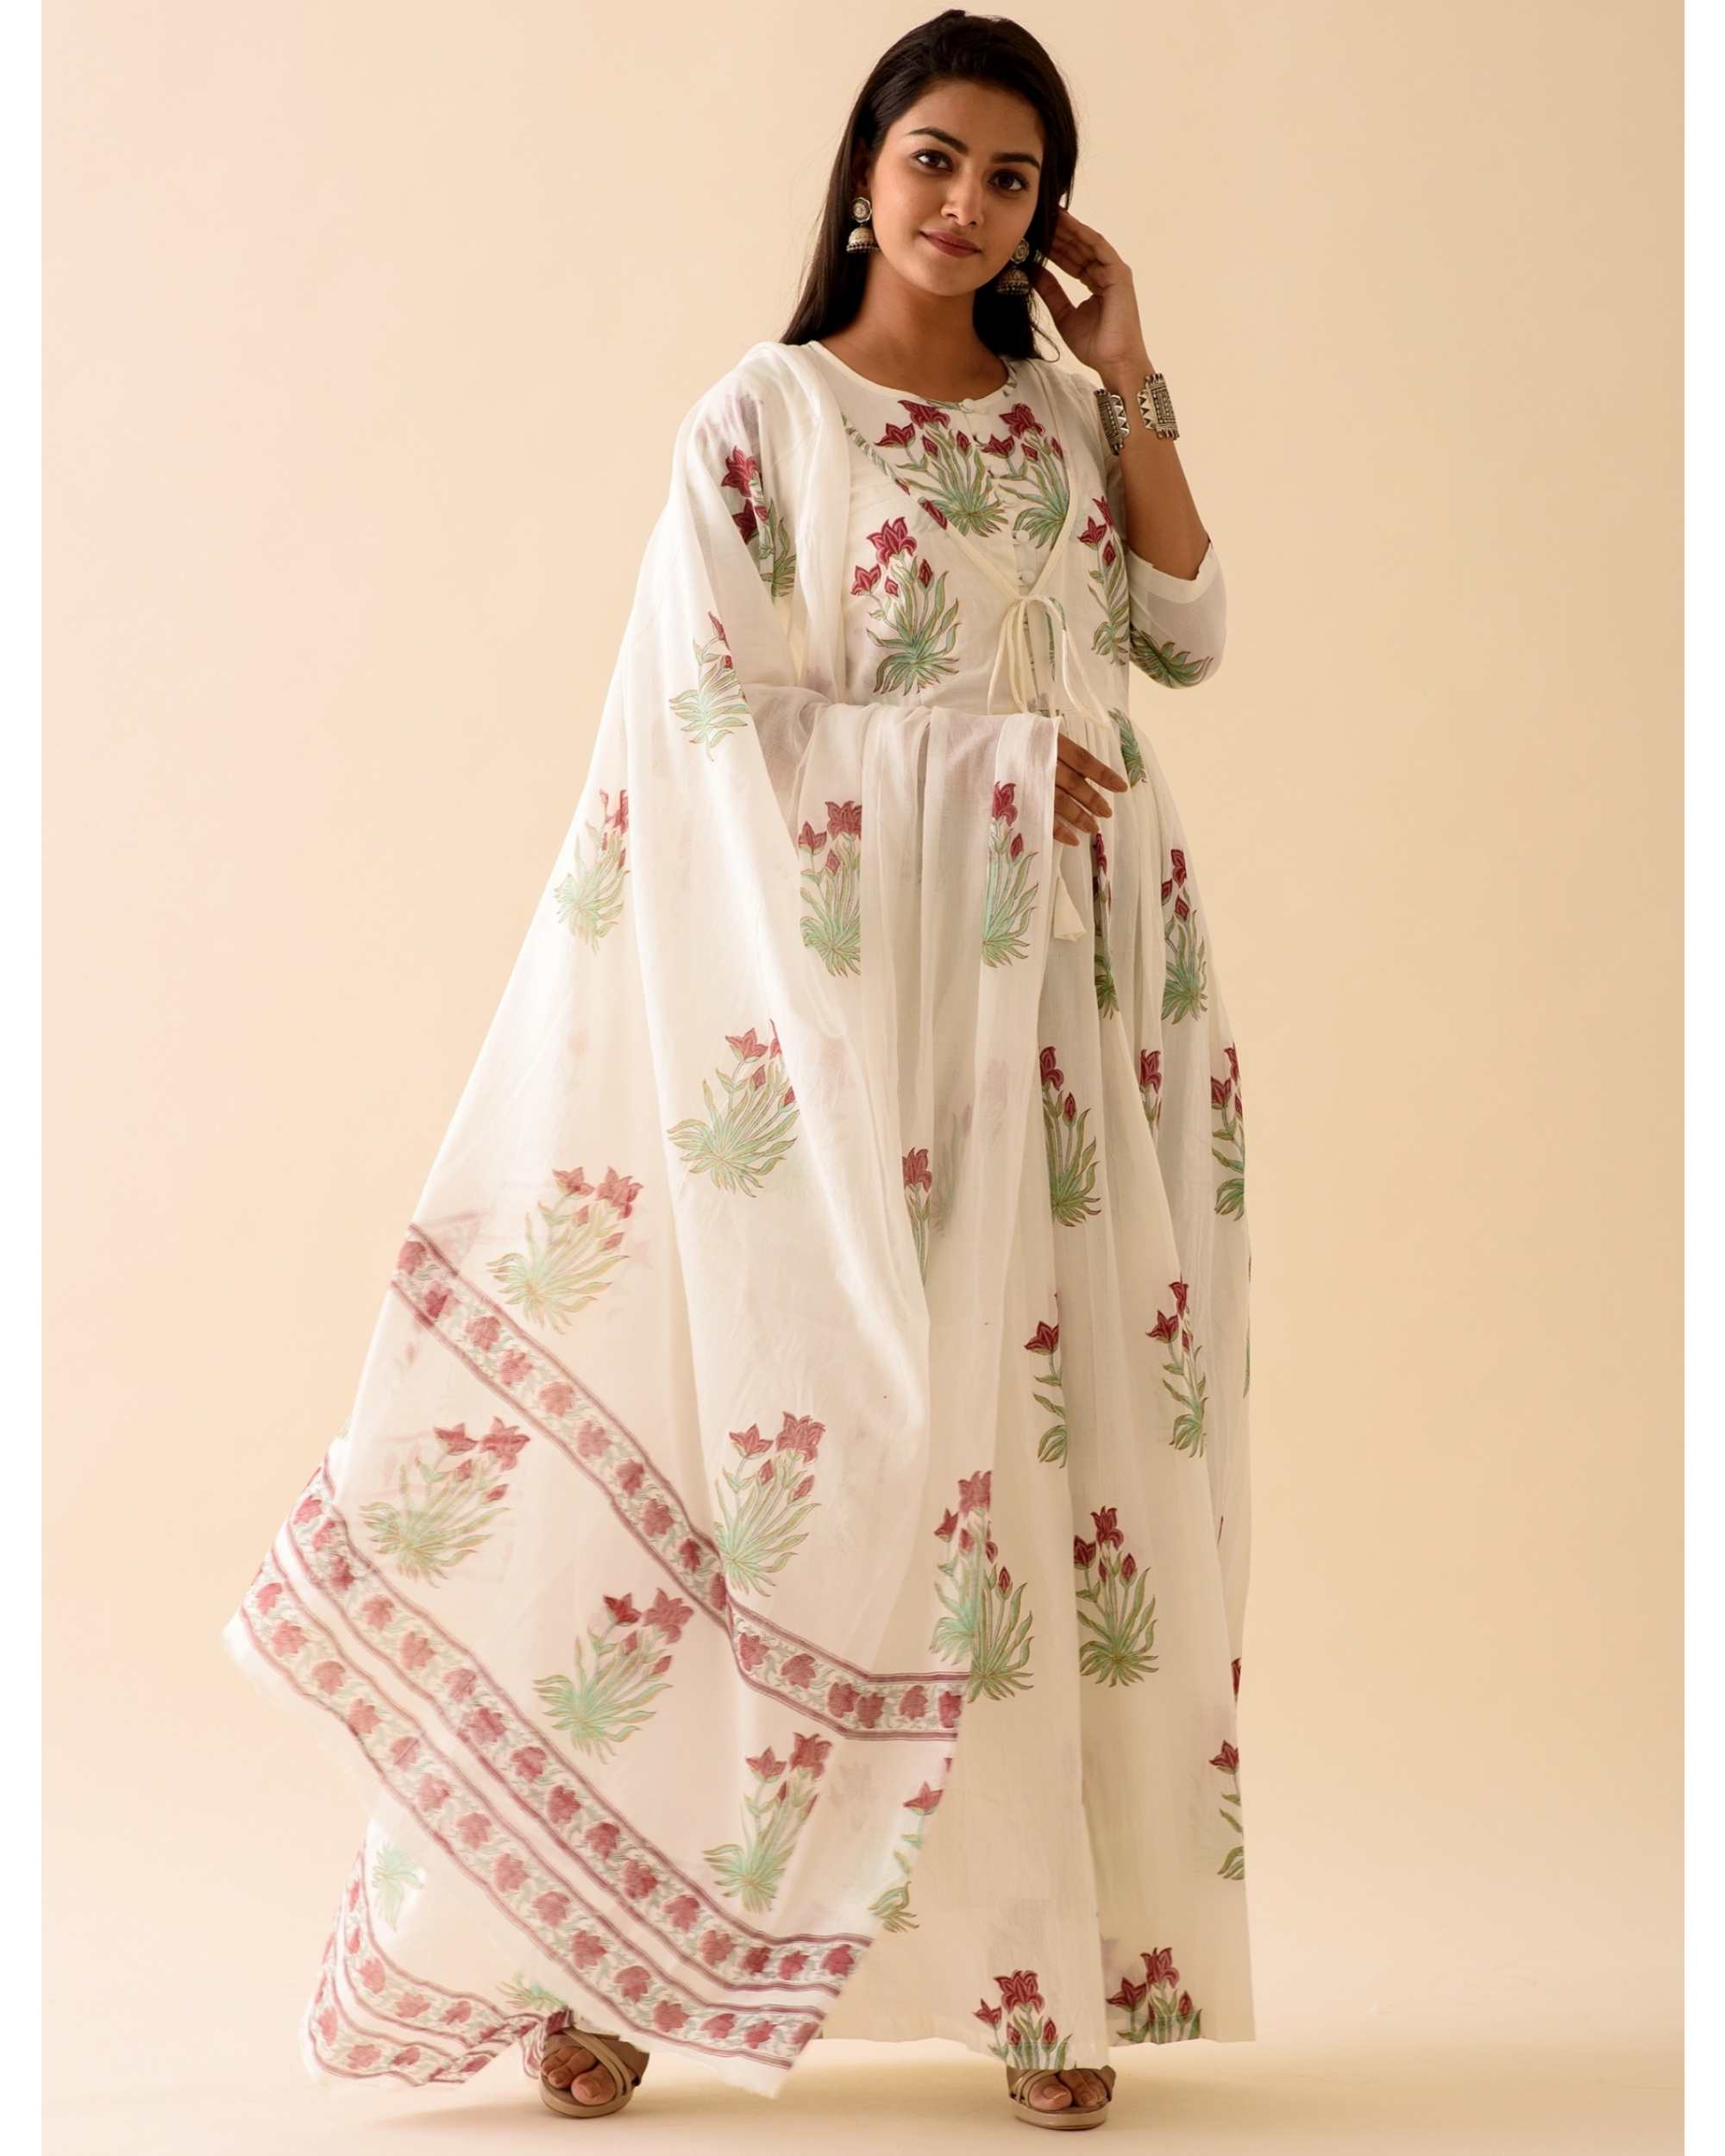 Off-white marsala print dress with dupatta-set of two